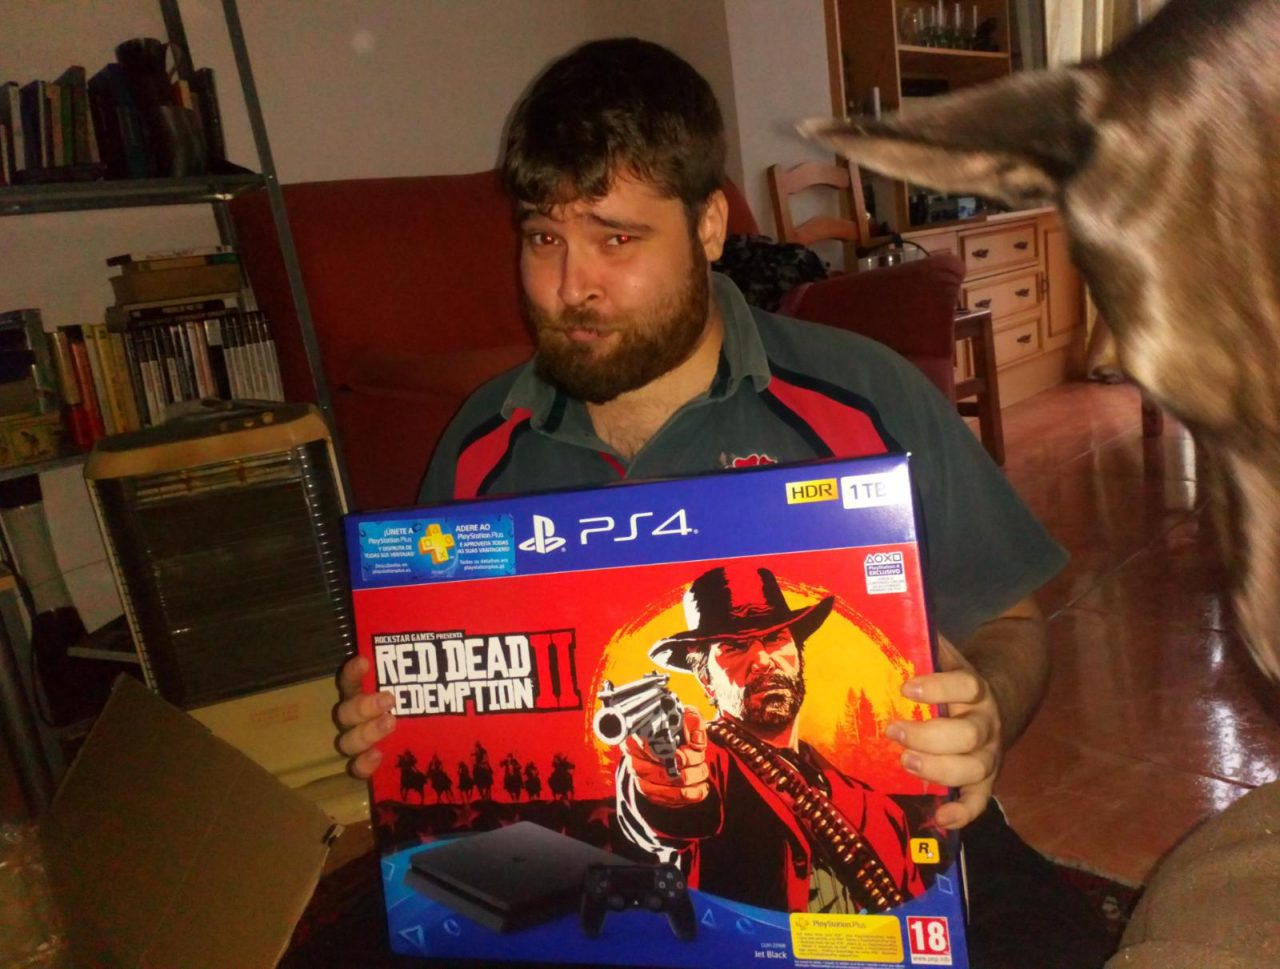 ¡Lel ya ha recibido su PS4!